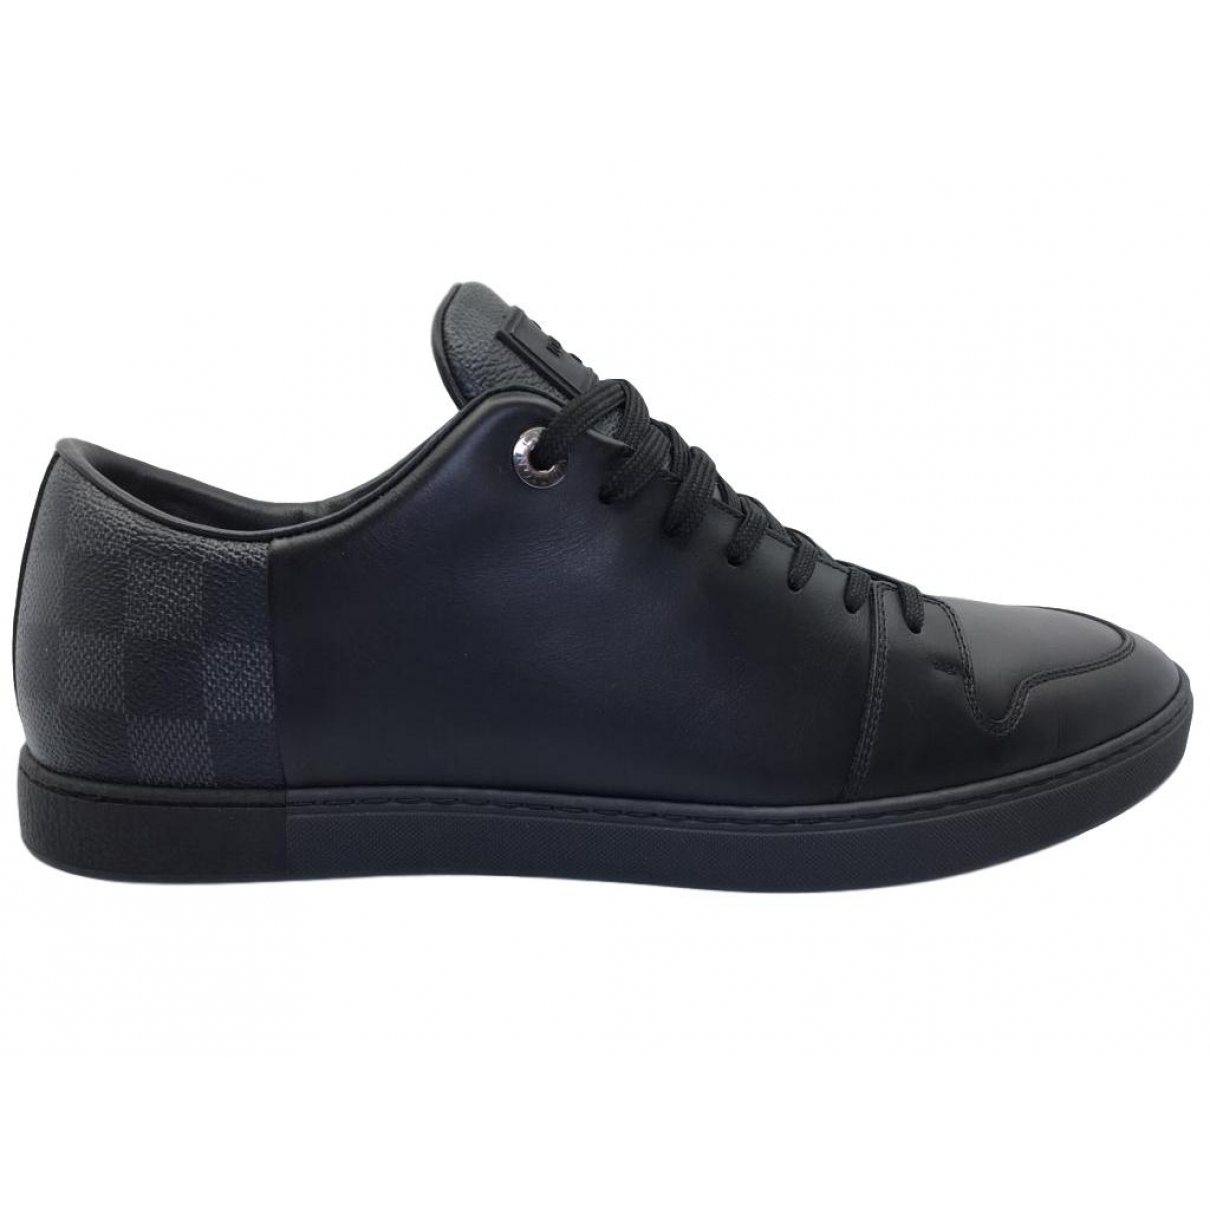 Louis Vuitton \N Black Leather Trainers for Men 9.5 UK